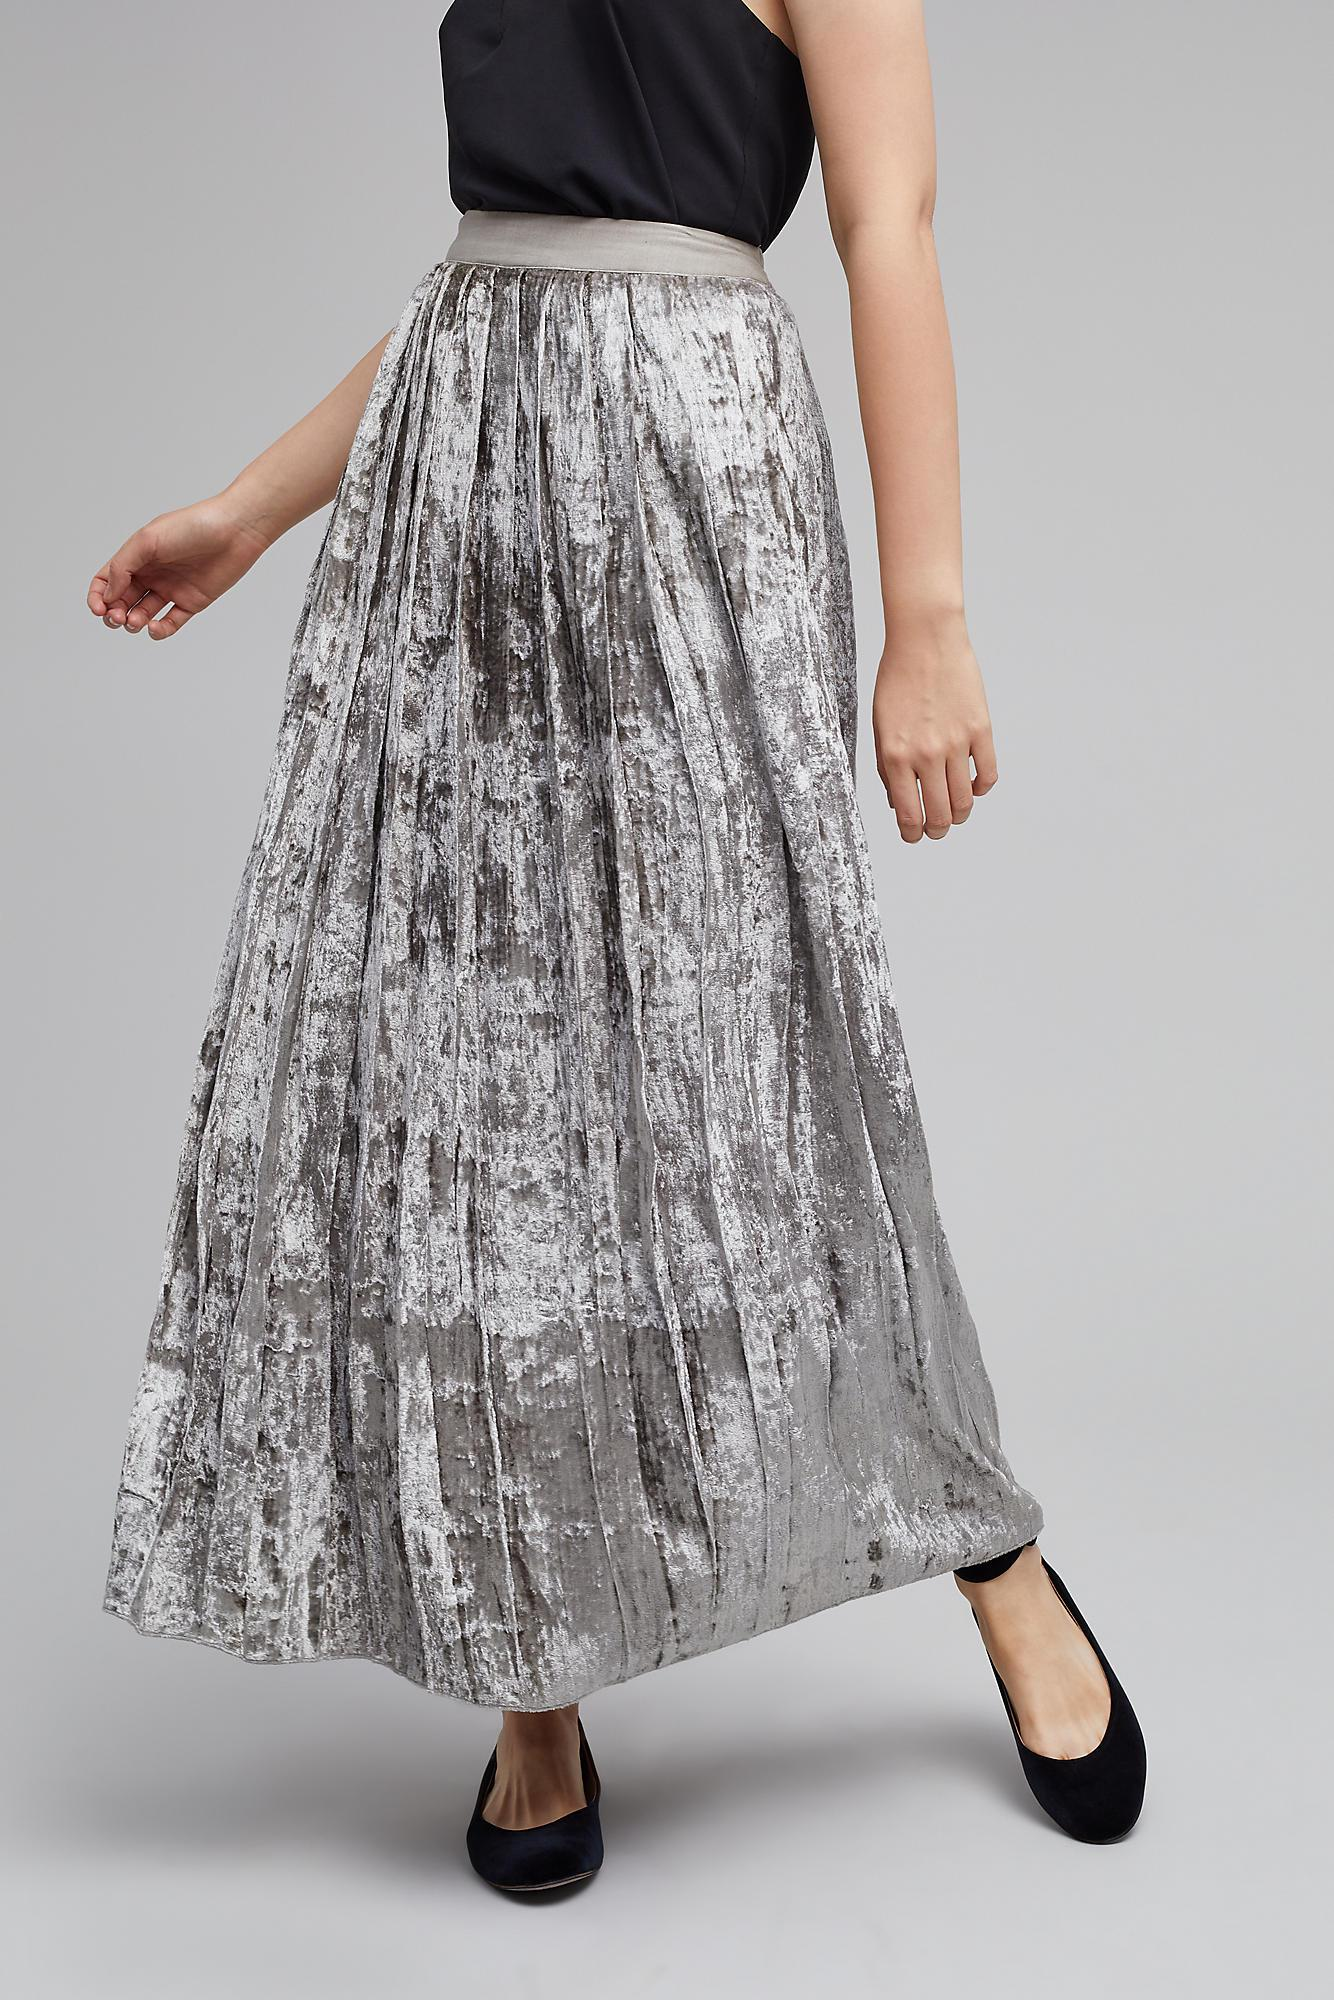 e57de9fd1c Gallery. Previously sold at: Anthropologie · Women's Metallic Skirts  Women's Pleated Skirts